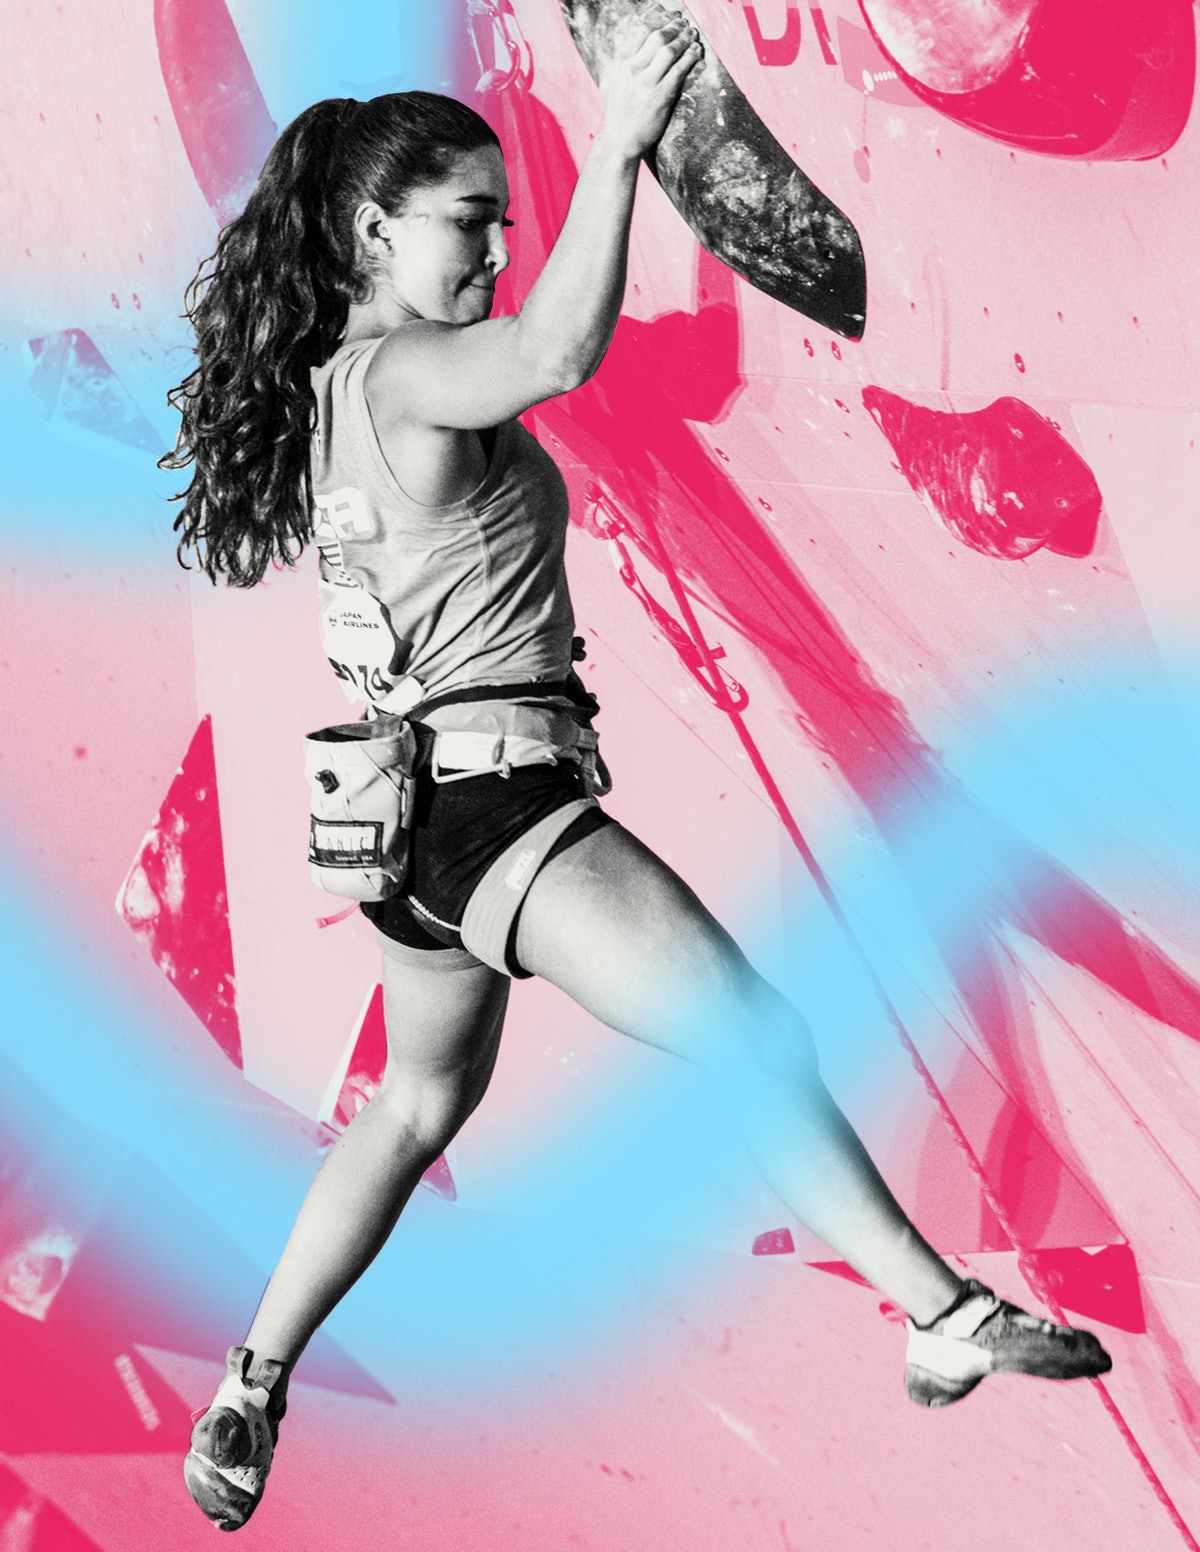 Climber Brooke Raboutou scales a wall, with the image seen in pink and blue